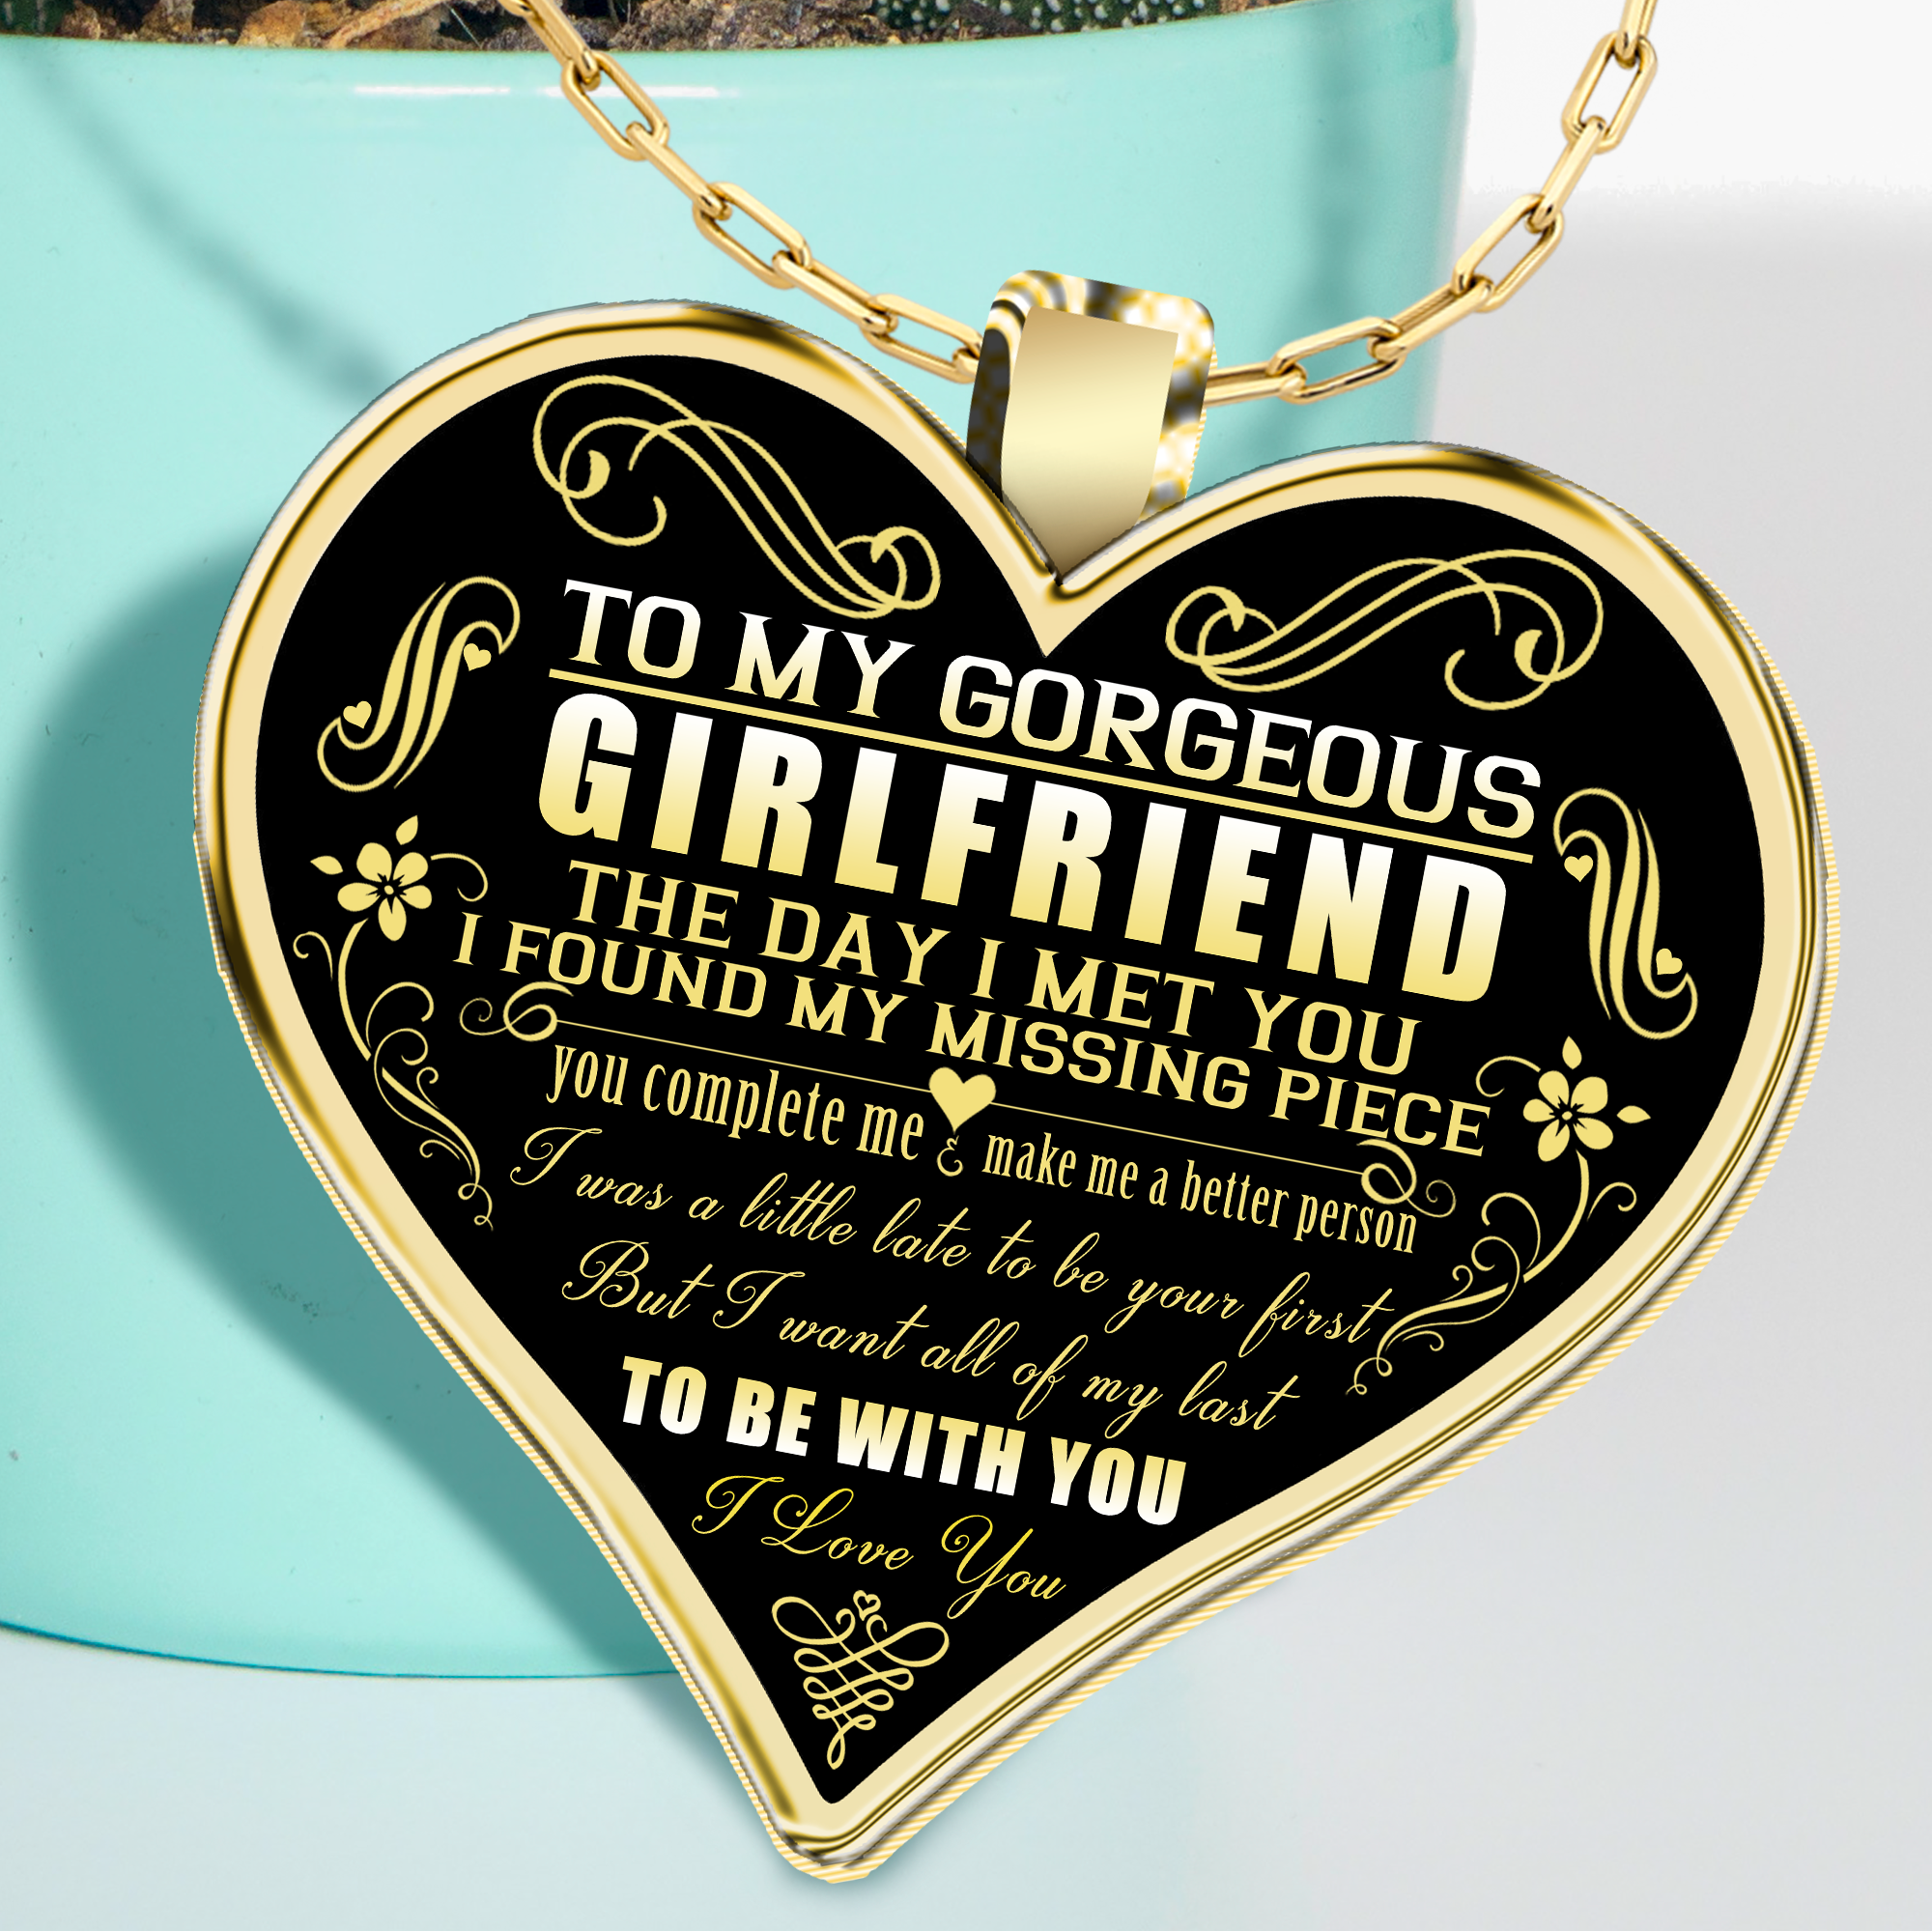 To My Girlfriend Necklace For Best Birthday Gift Gearbubble Campaign